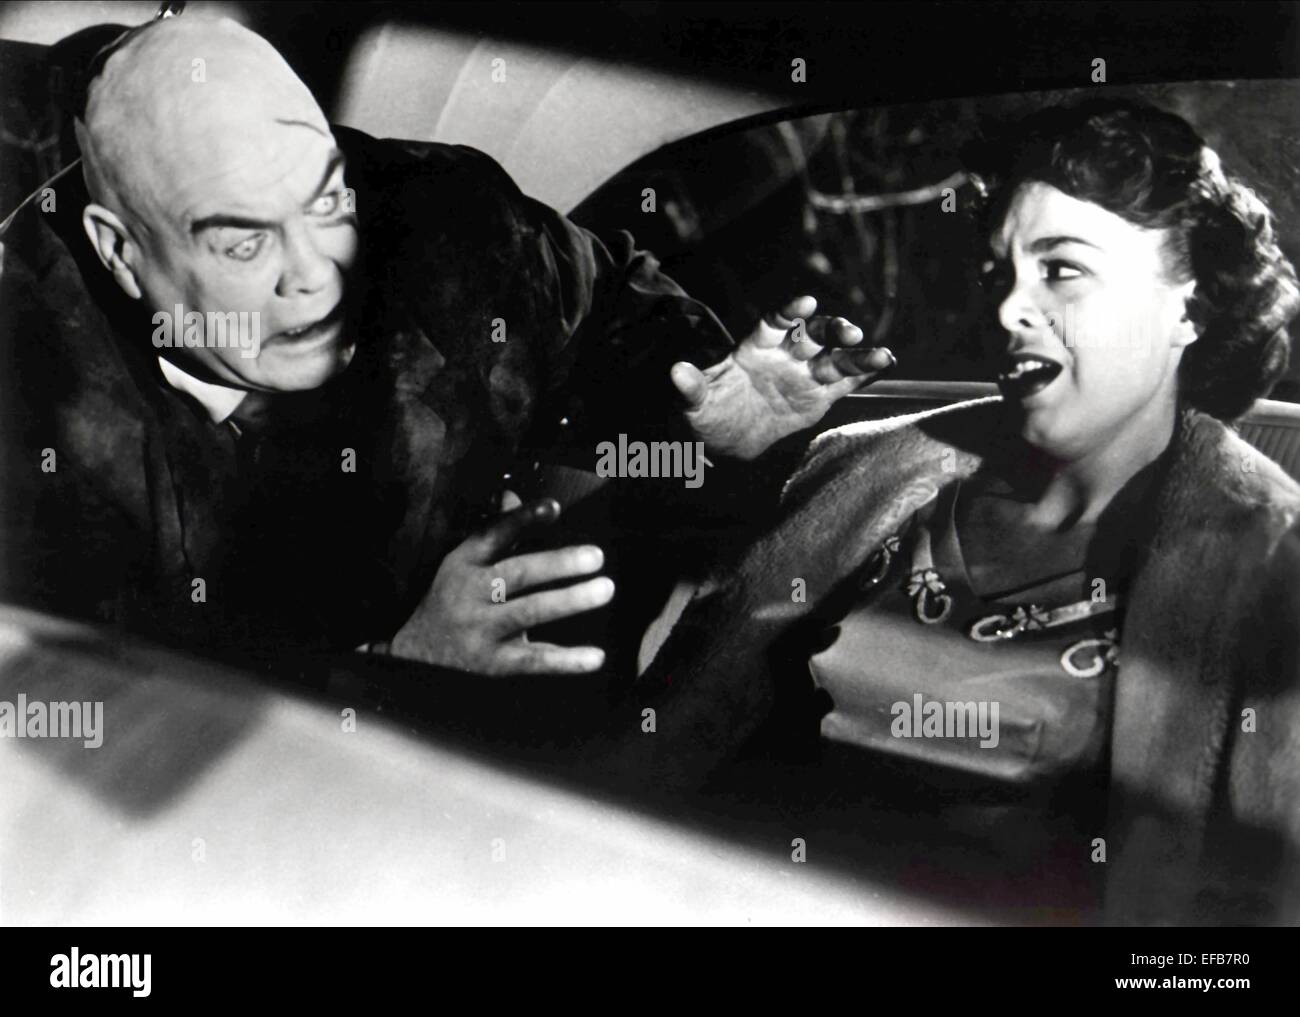 TOR JOHNSON, MONA MCKINNON, PLAN 9 FROM OUTER SPACE, 1959 - Stock Image